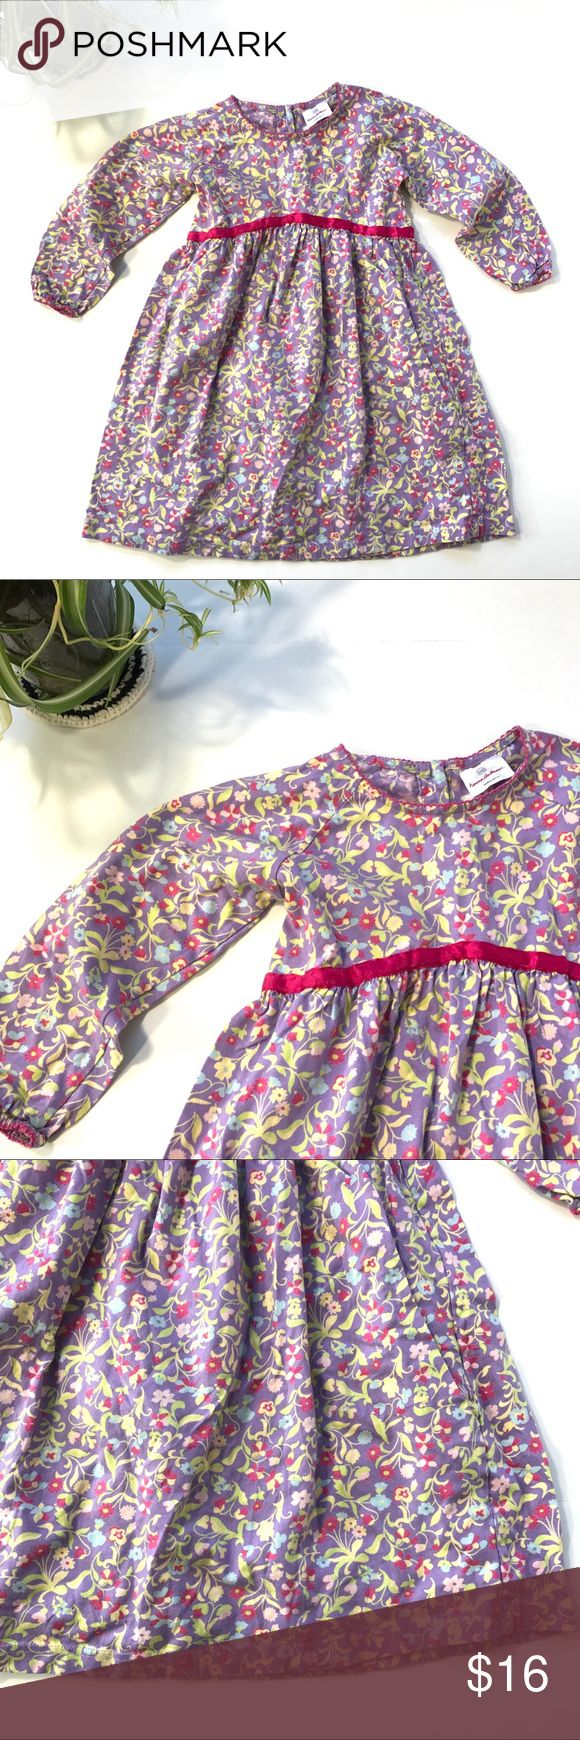 Hanna Andersson purple floral long sleeve dress This is a Hanna Andersson girls floral printed dress with light sleeves and a ribbon waist tie. It is girls size 110 (US 5 equivalent).  This dress is in pre-owned condition with light wear and some light fading, but no holes or stains. Please take a look through the photos to see if this item is right for you! Hanna Andersson Dresses Casual